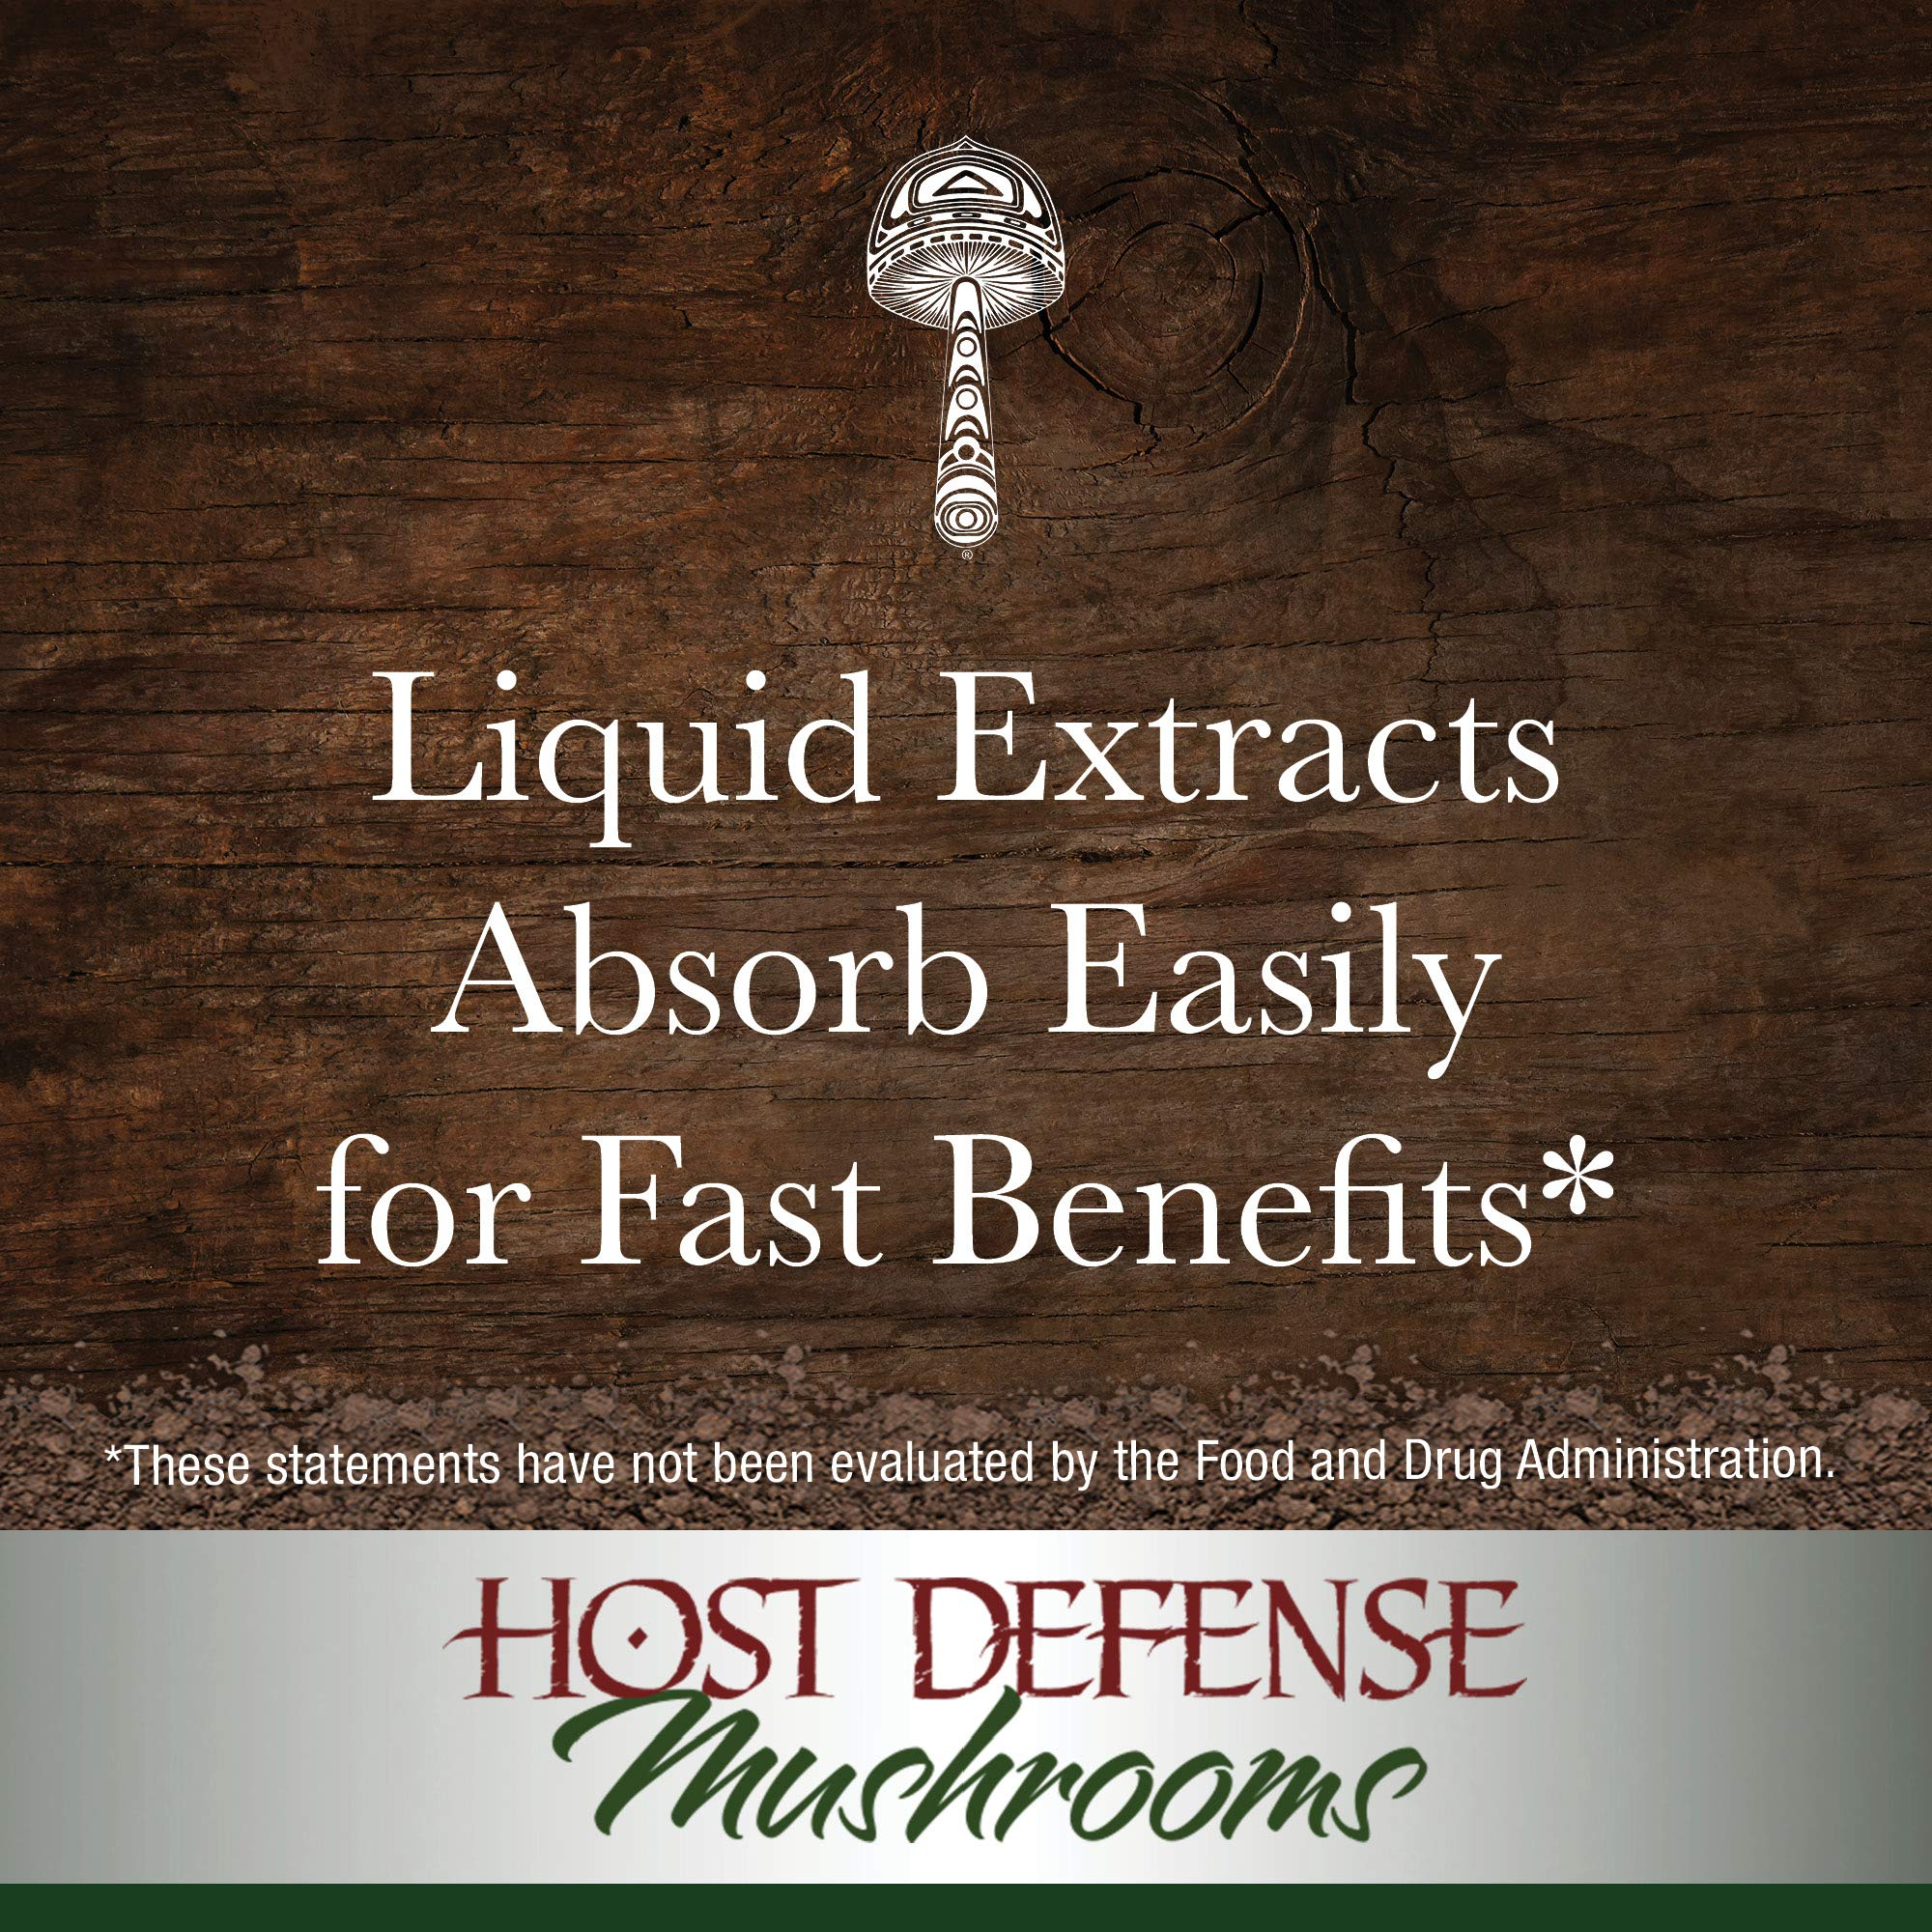 Host Defense - MyCommunity Multi Mushroom Extract, Comprehensive Support for a Robust and Resilient Immune System with Lion's Mane and Turkey Tails, Non-GMO, Vegan, Organic, 120 Servings (4 Ounces) by Host Defense (Image #6)